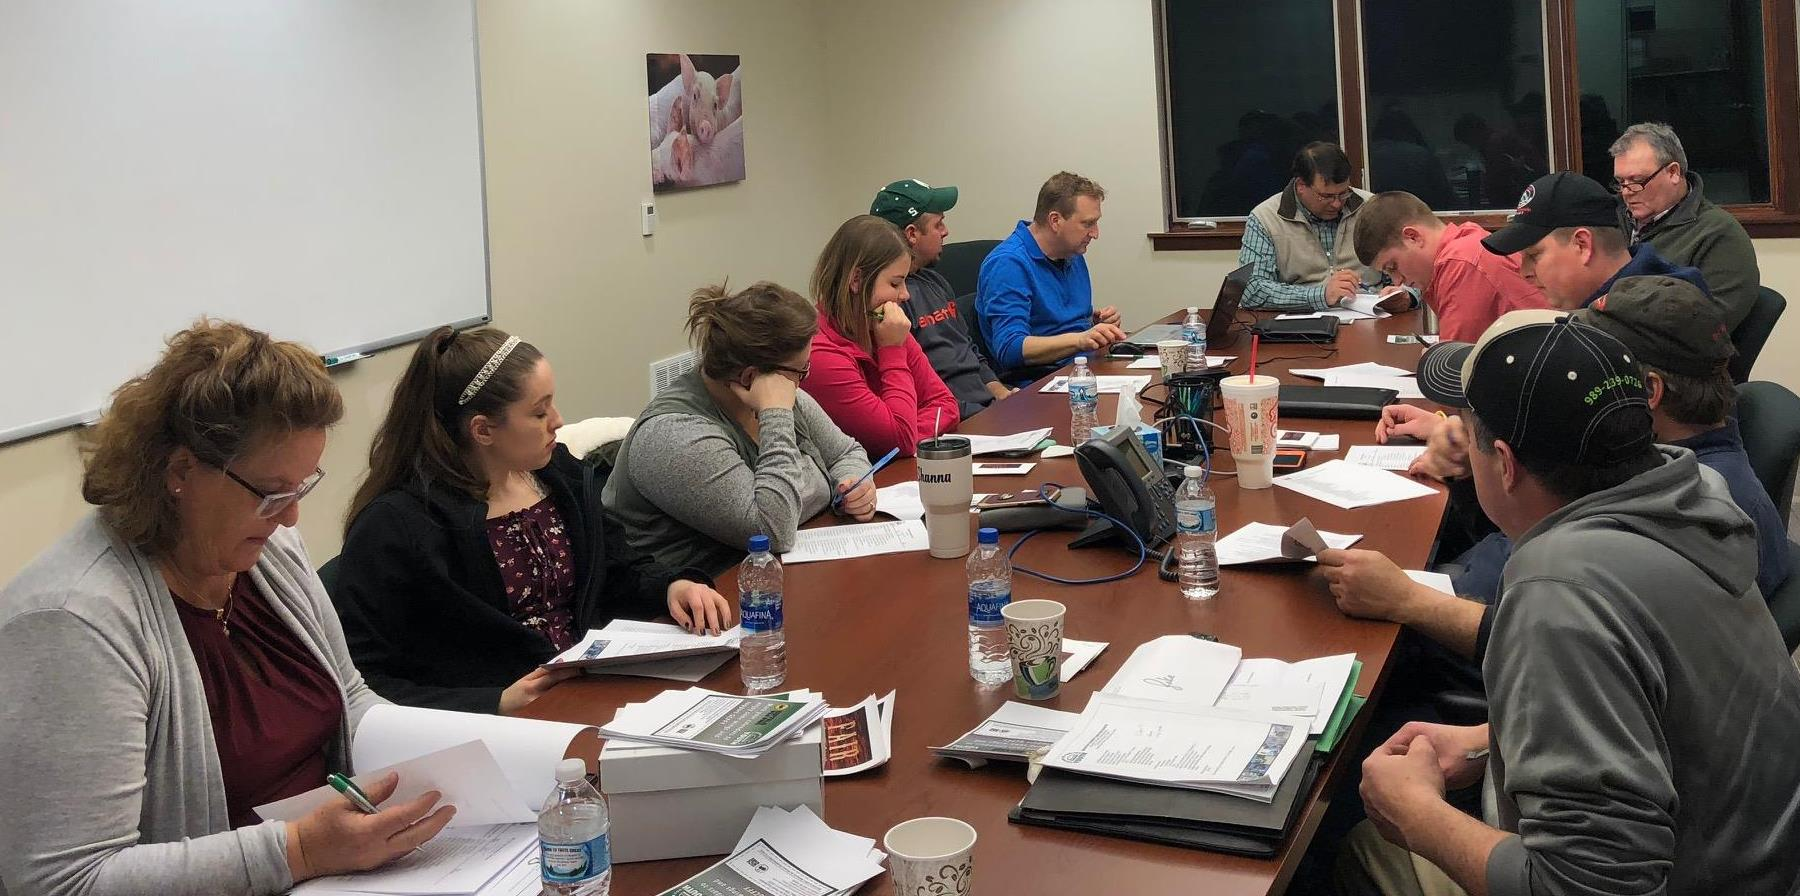 Gratiot County Fair meeting at Alma branch for the come grow with us campaign